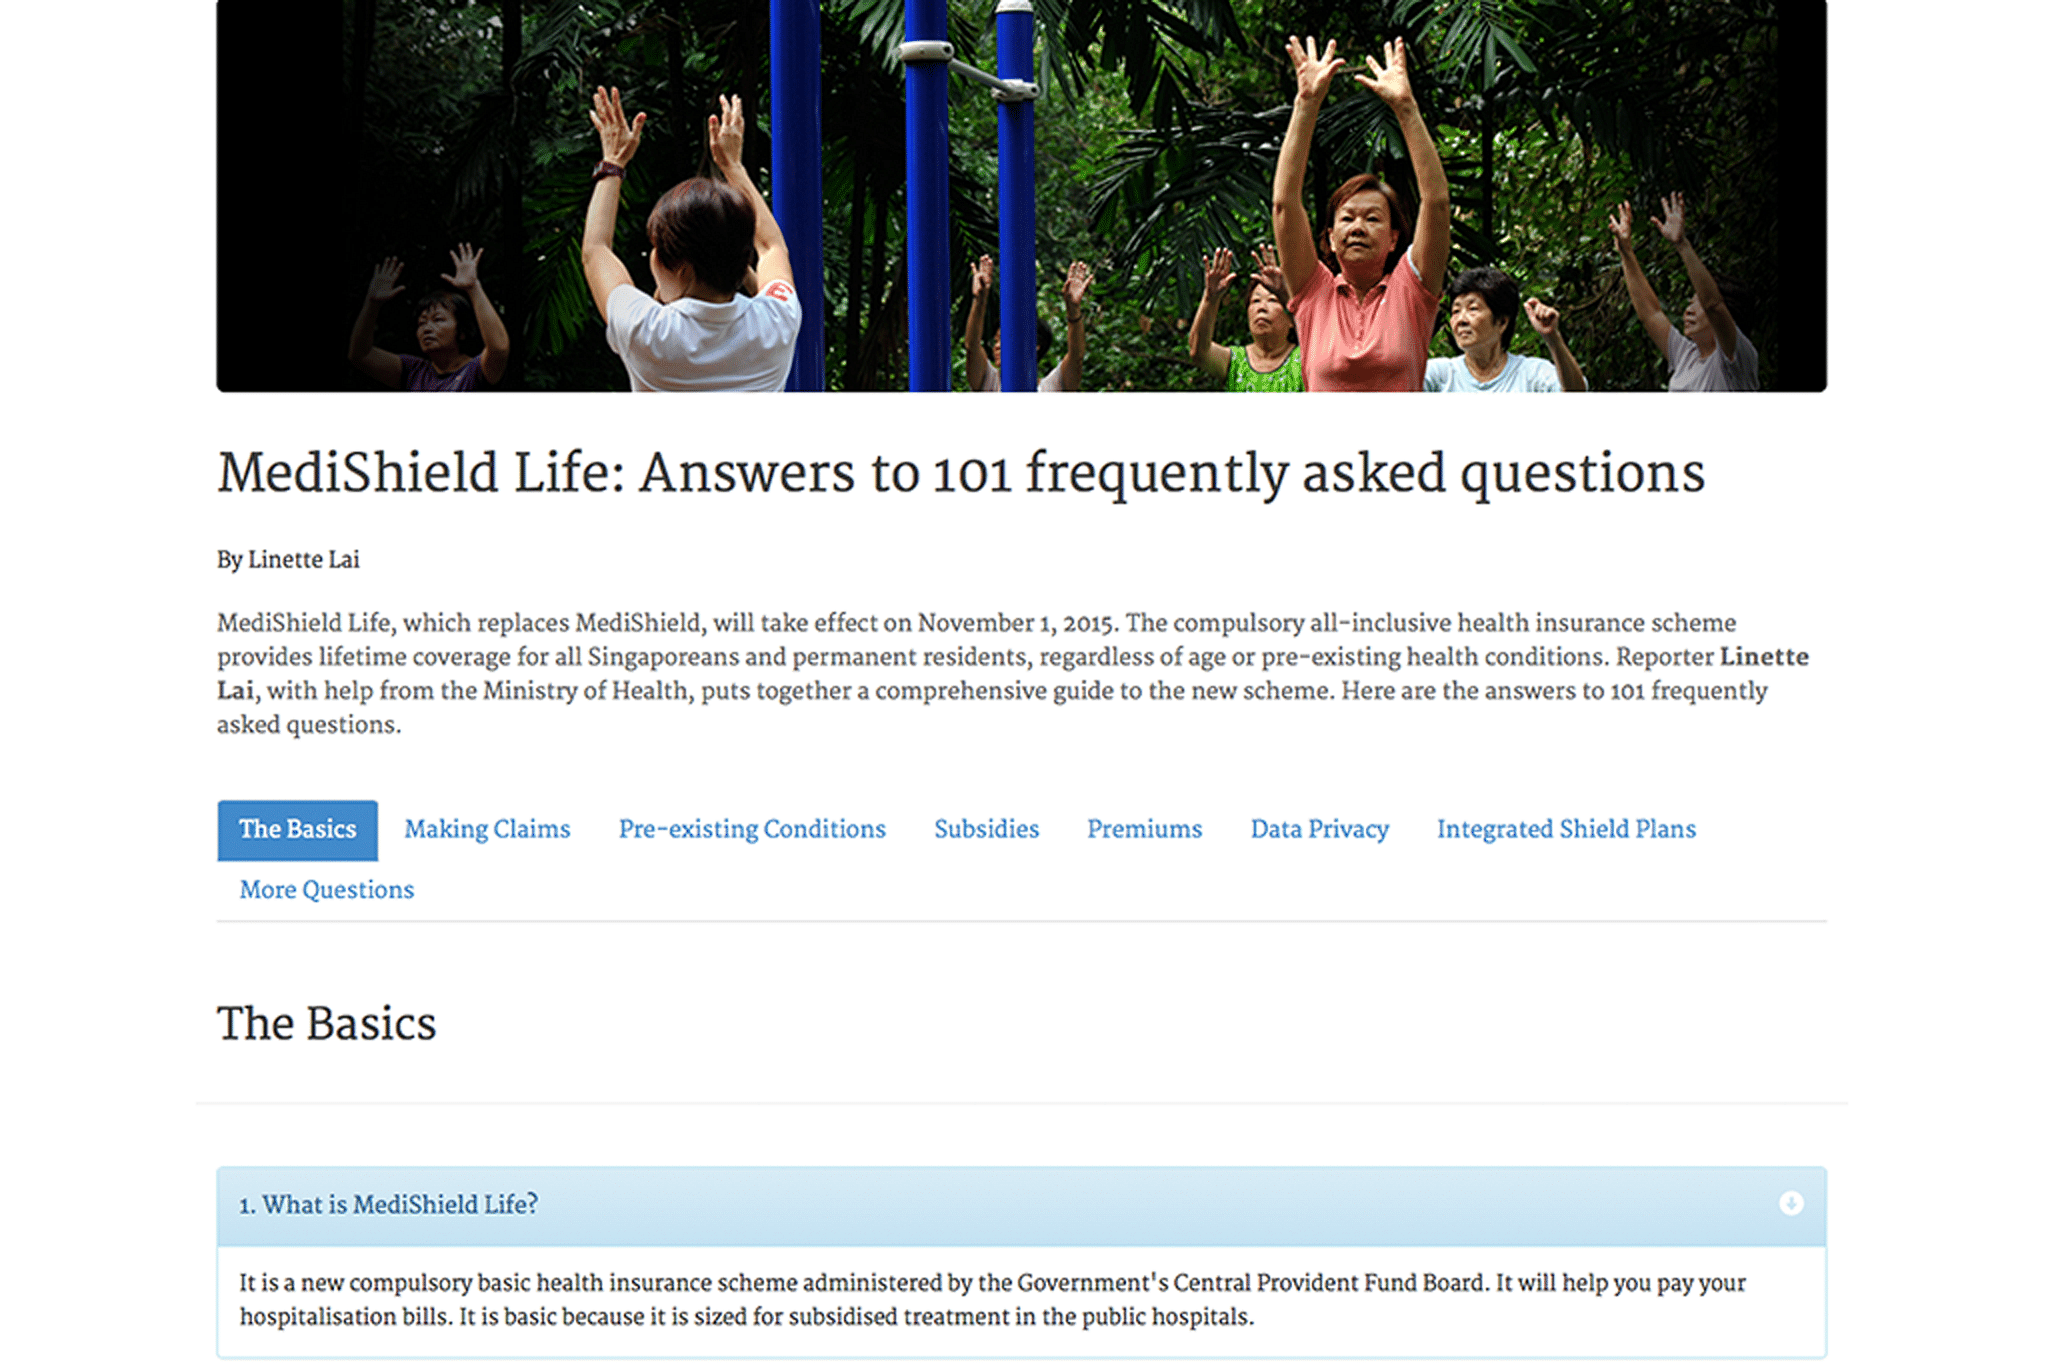 Answers to 101 frequently asked questions